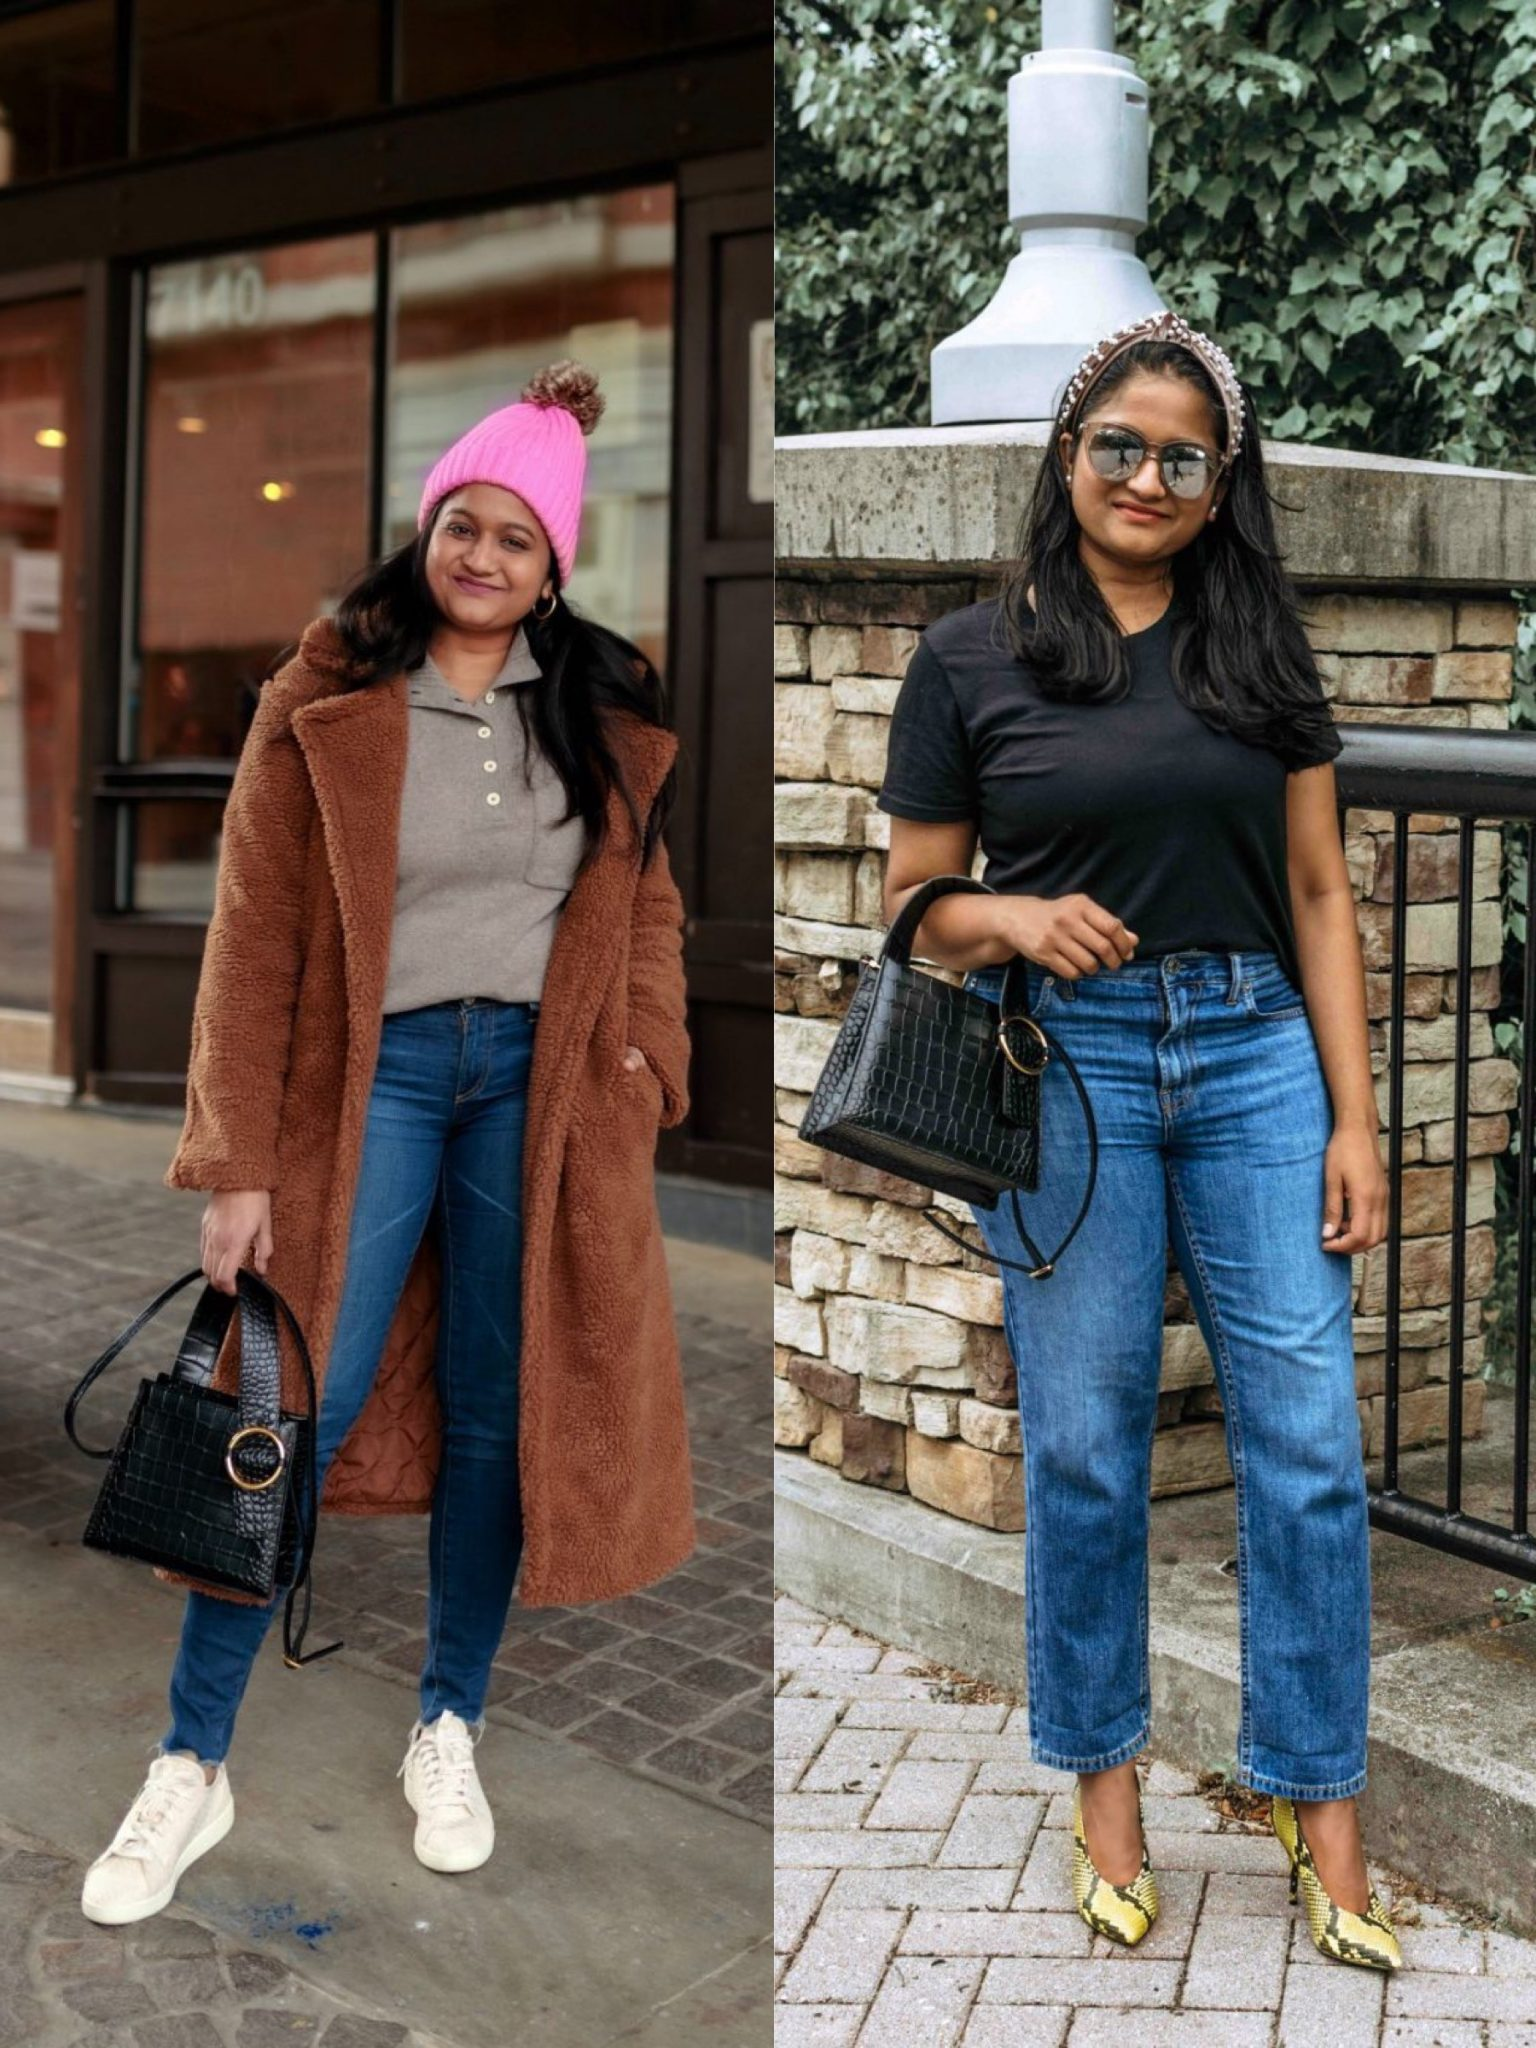 How to Style Parisa Wang Enchanted Top Handle Bag review.1 |  Handbags Under $500 by popular Maryland modest fashion blog, Dreaming Loud: collage image of a woman holding a Parisa Wang Enchanted handle bag.